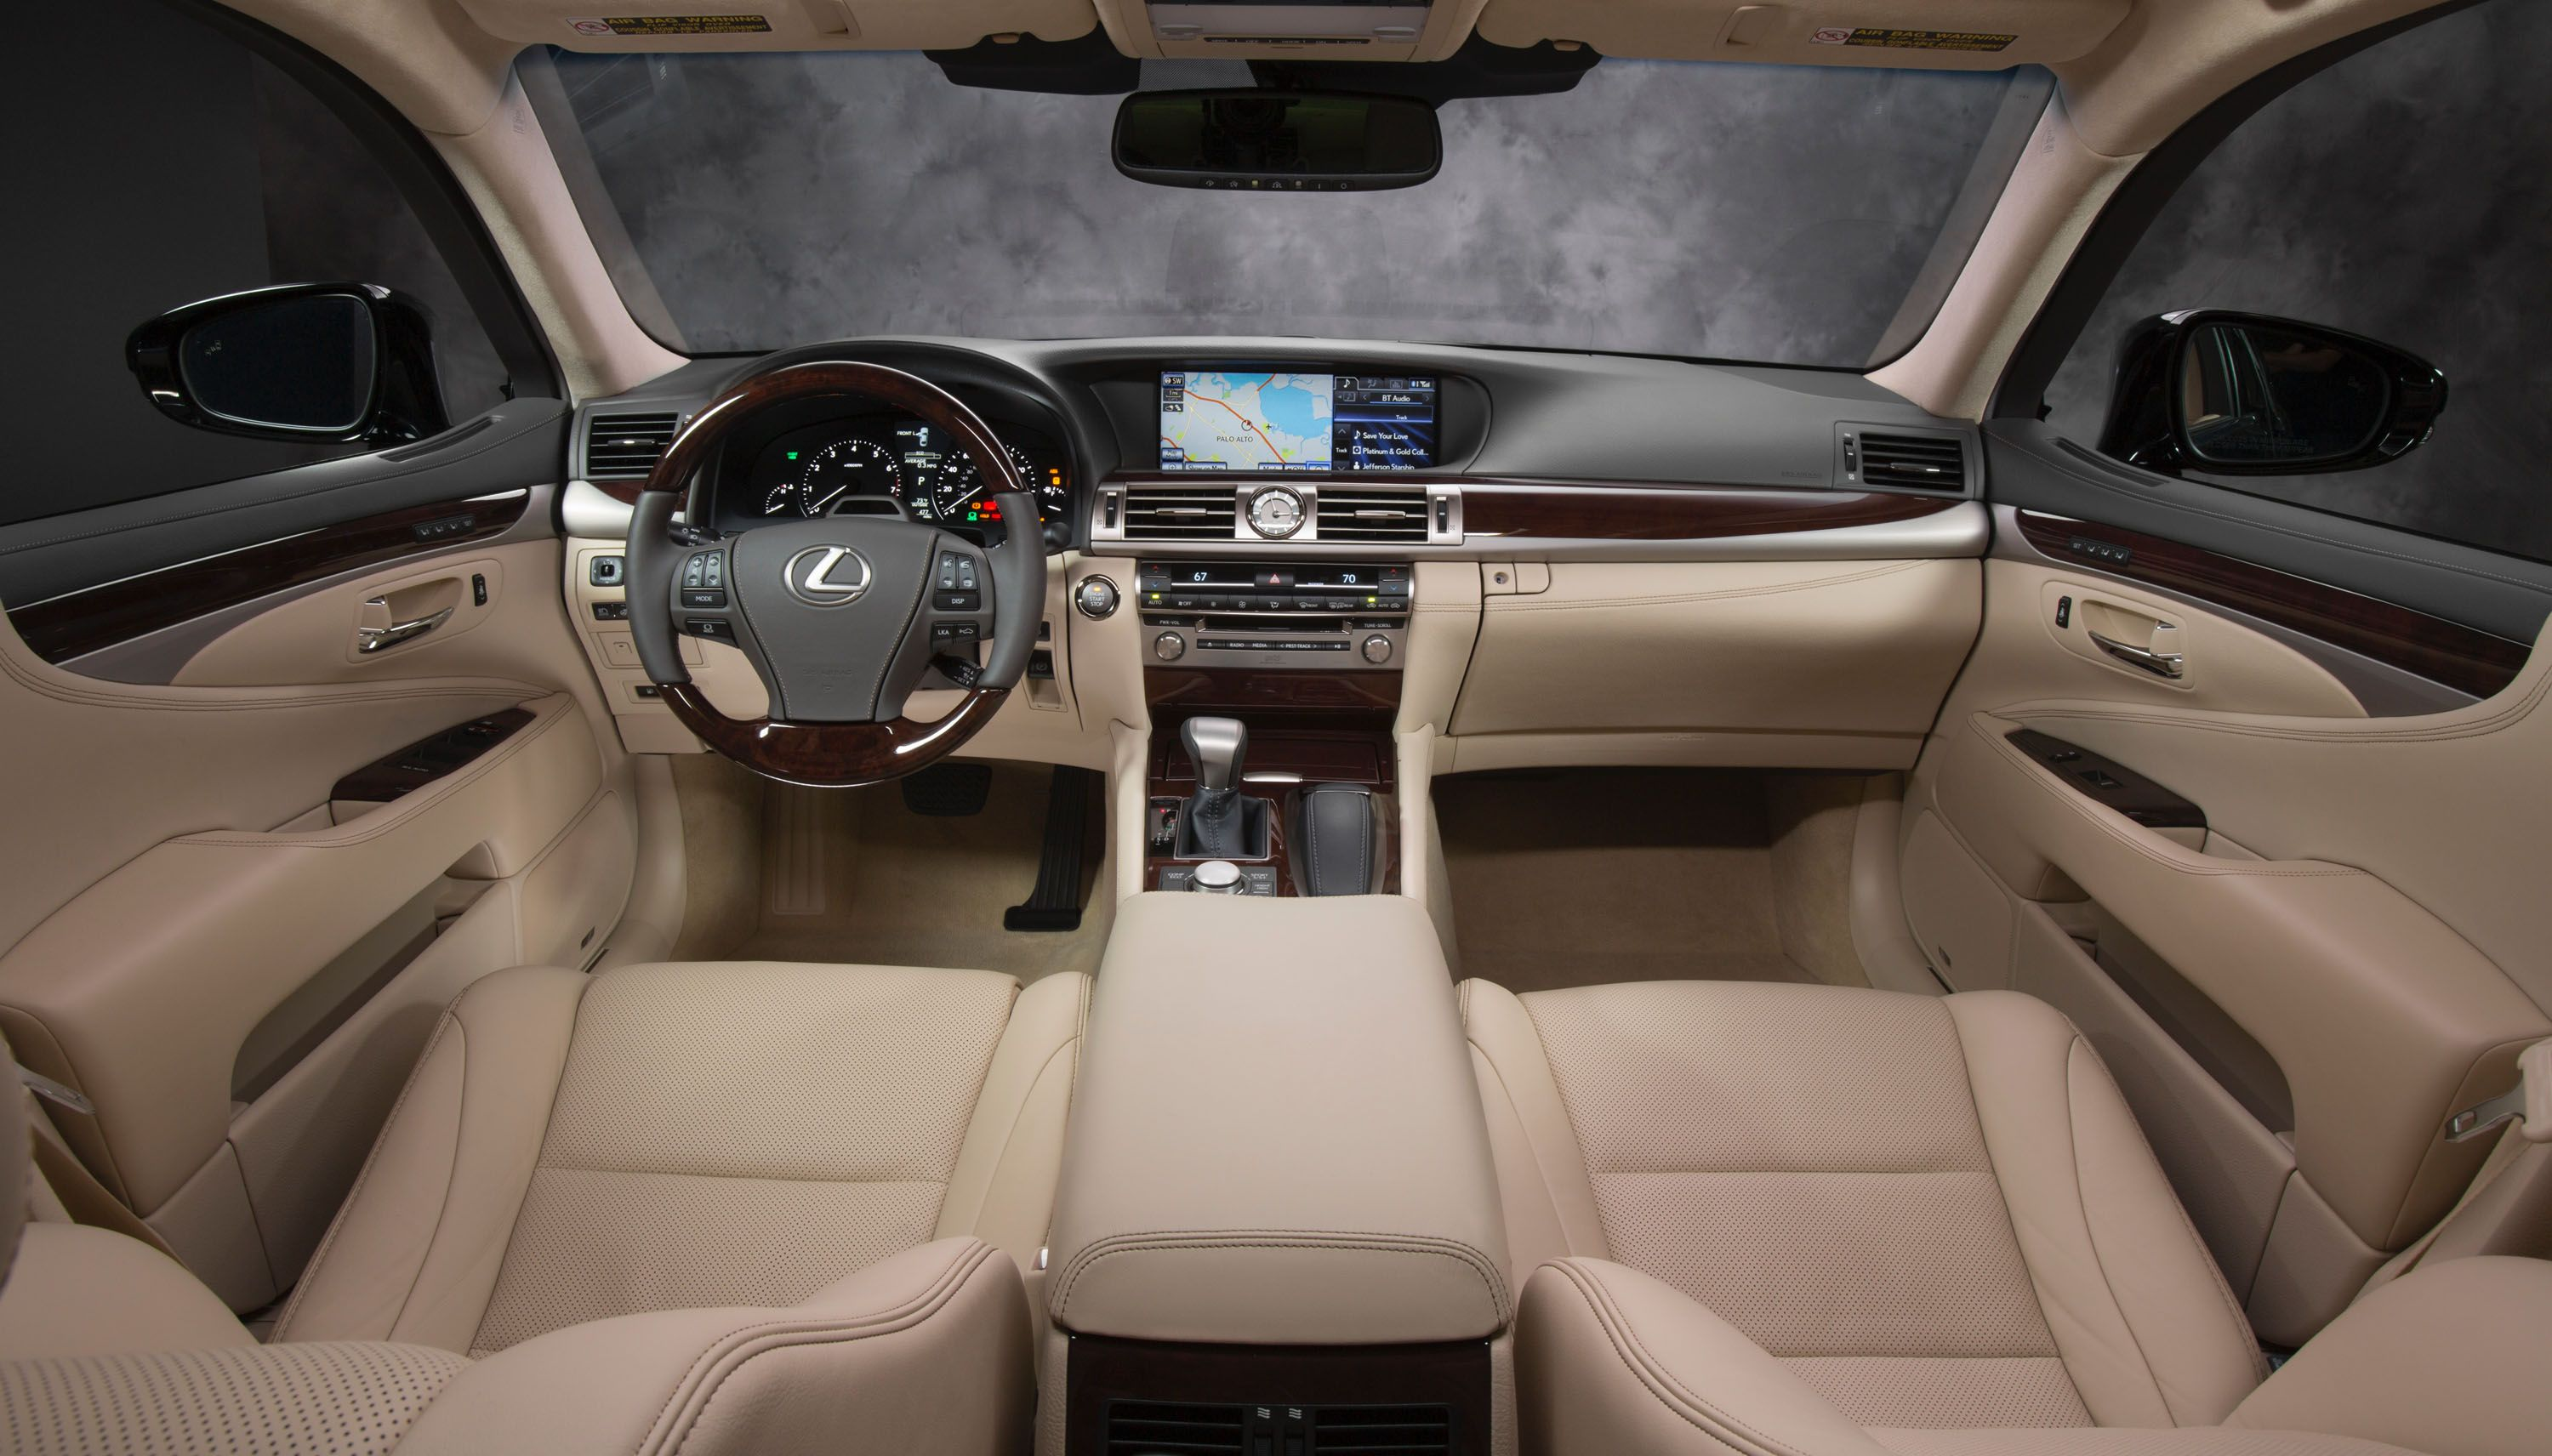 Latest Car Safety Systems Aimed At Safety And Comfort Of Cars Lexus Ls 460 Lexus Ls Latest Cars